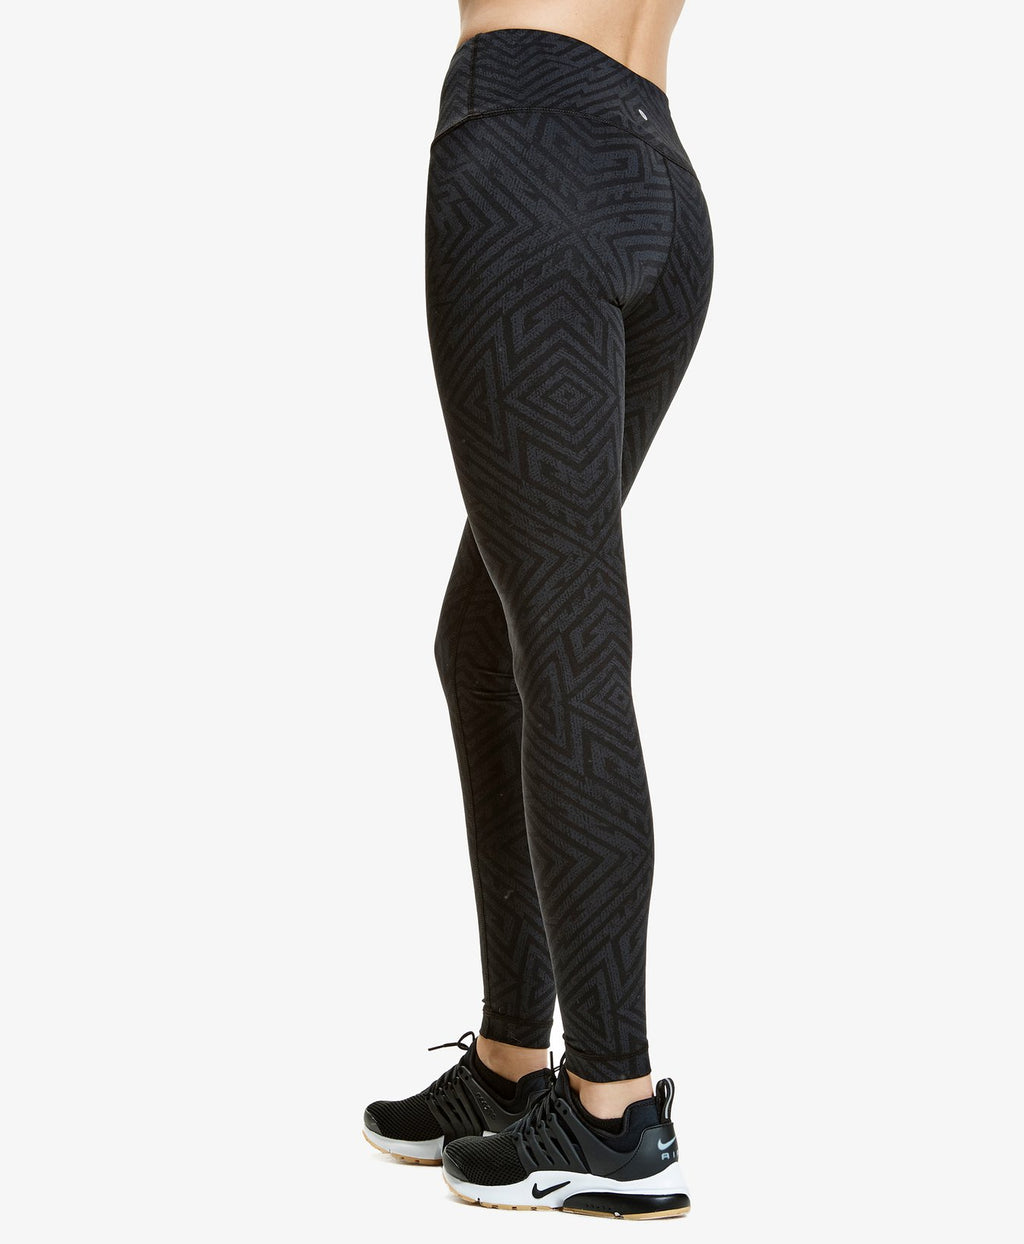 Aztec High Waist Leggings - Adult